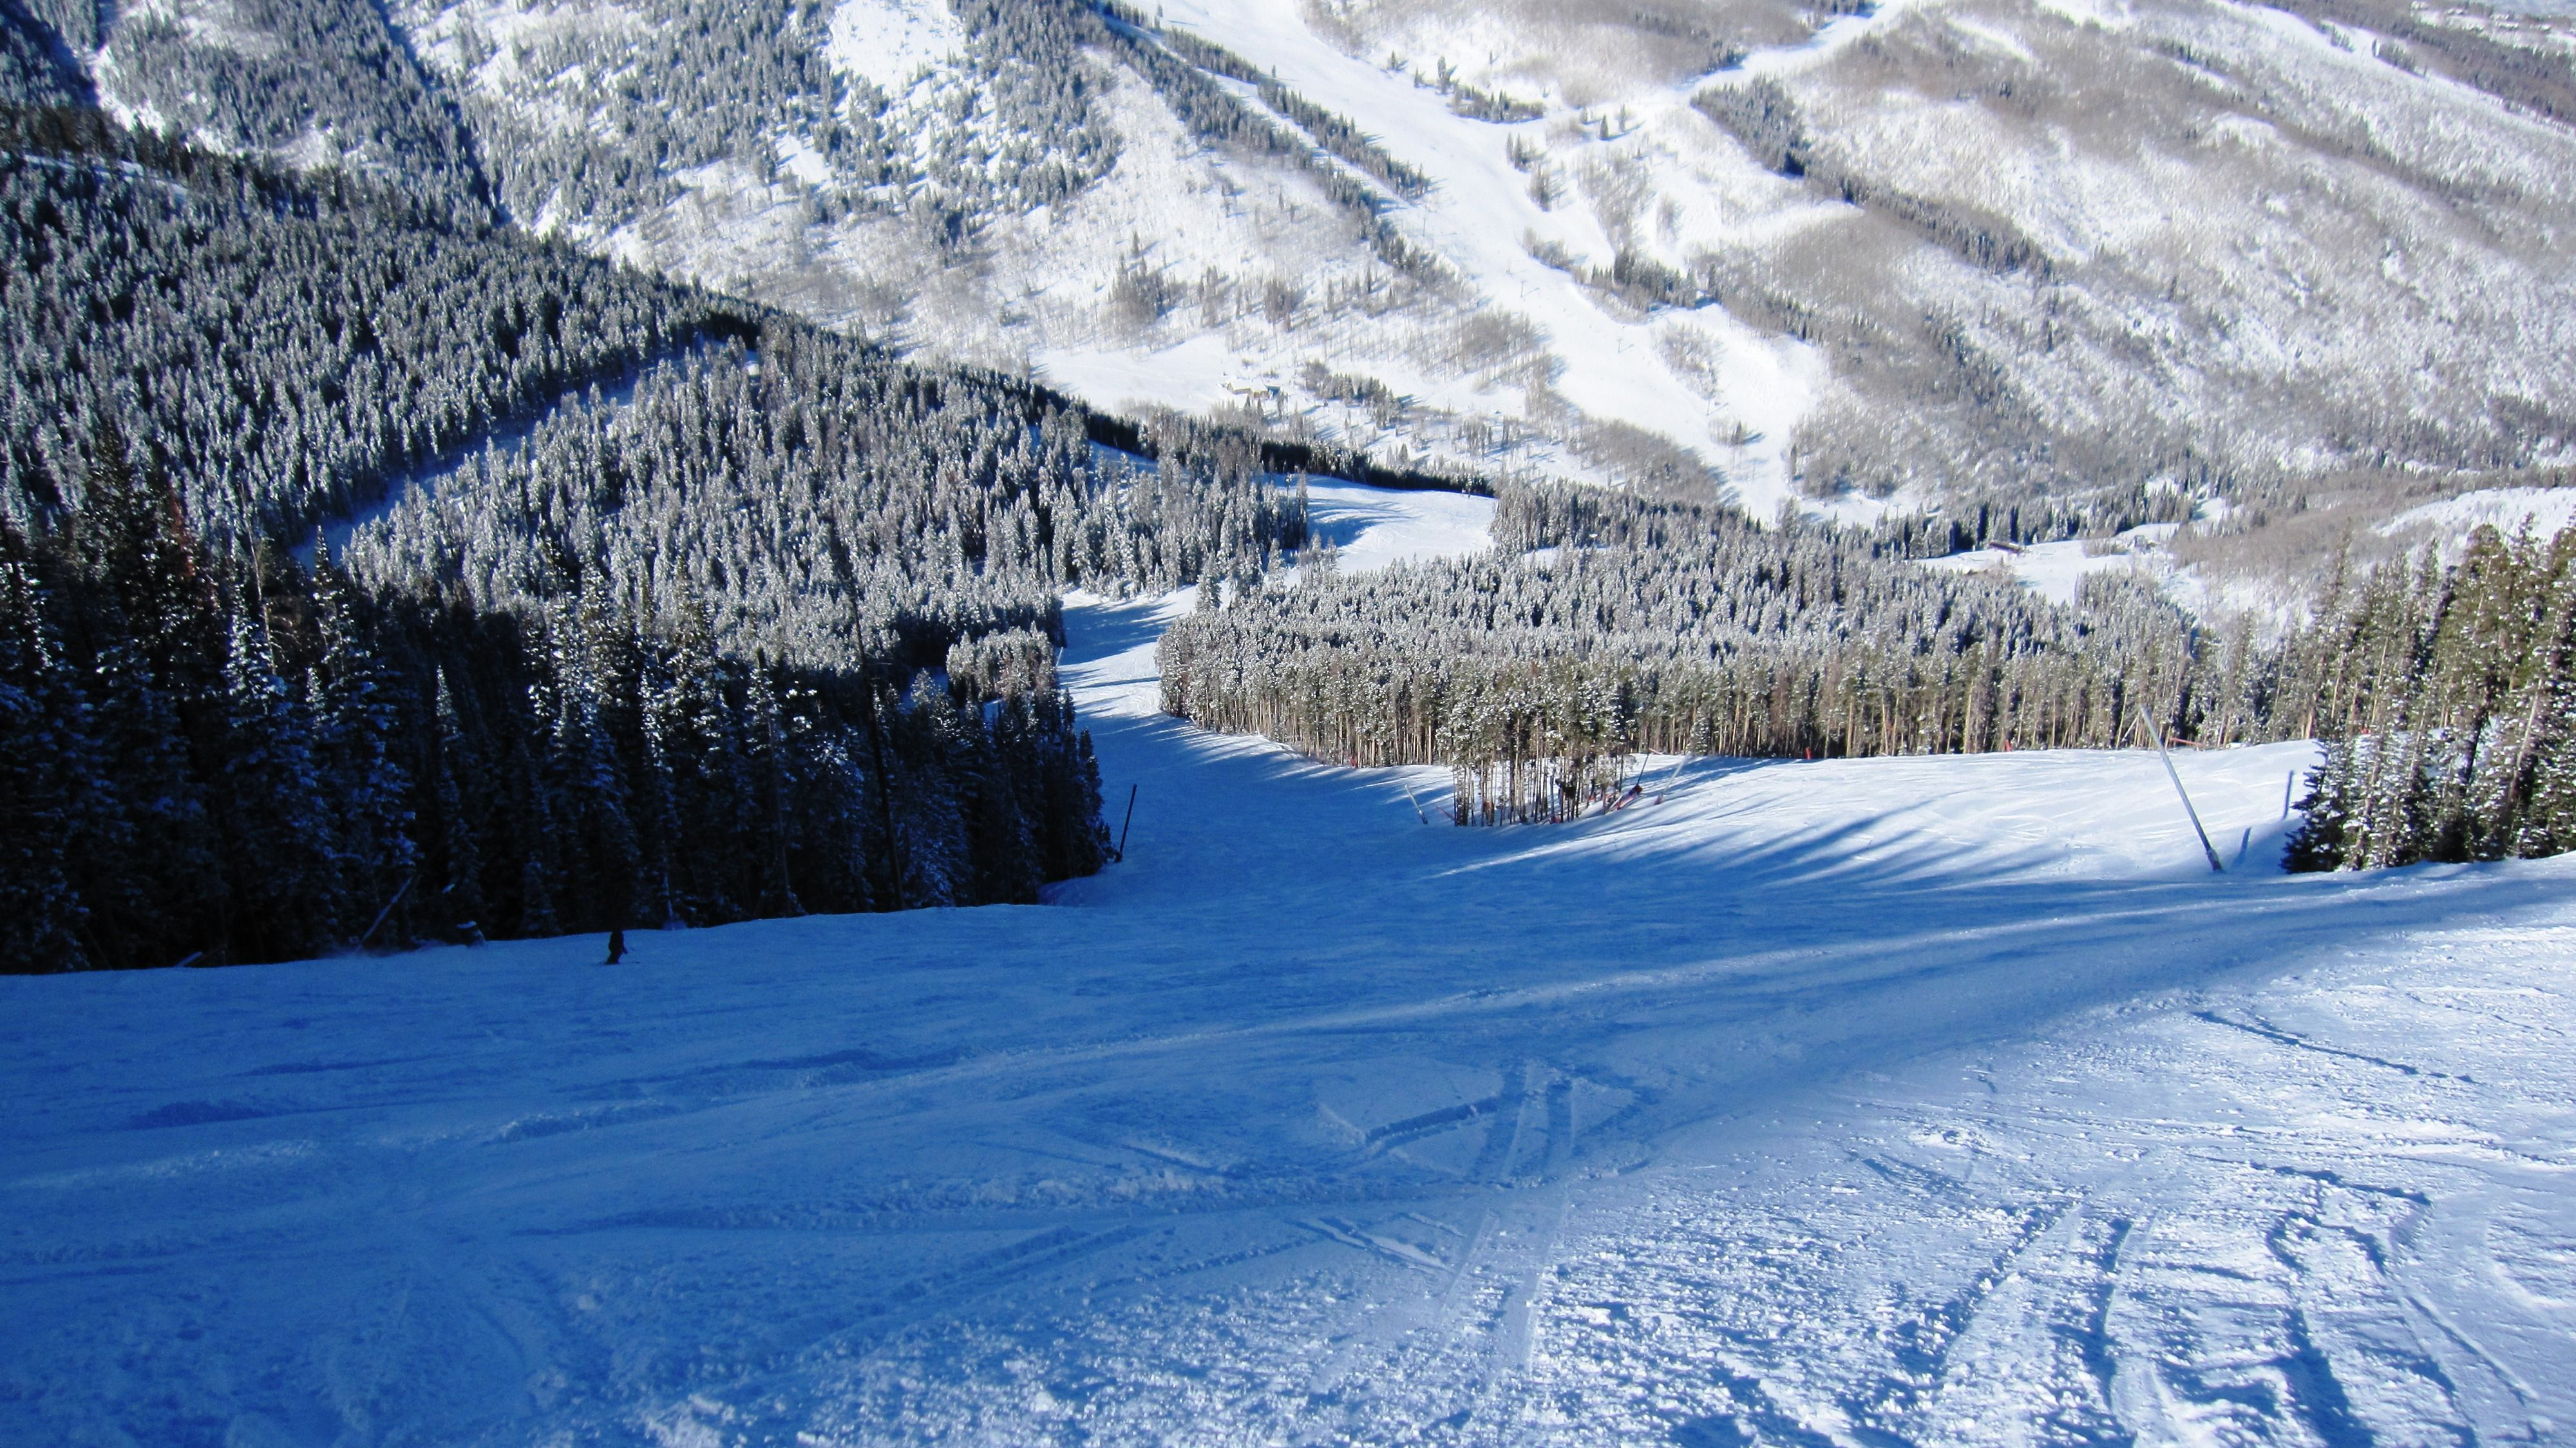 Birds Of Prey Downhill Course Beaver Creek Colorado Such A Fun Run With Images Travel Fun Beaver Creek Ski Season